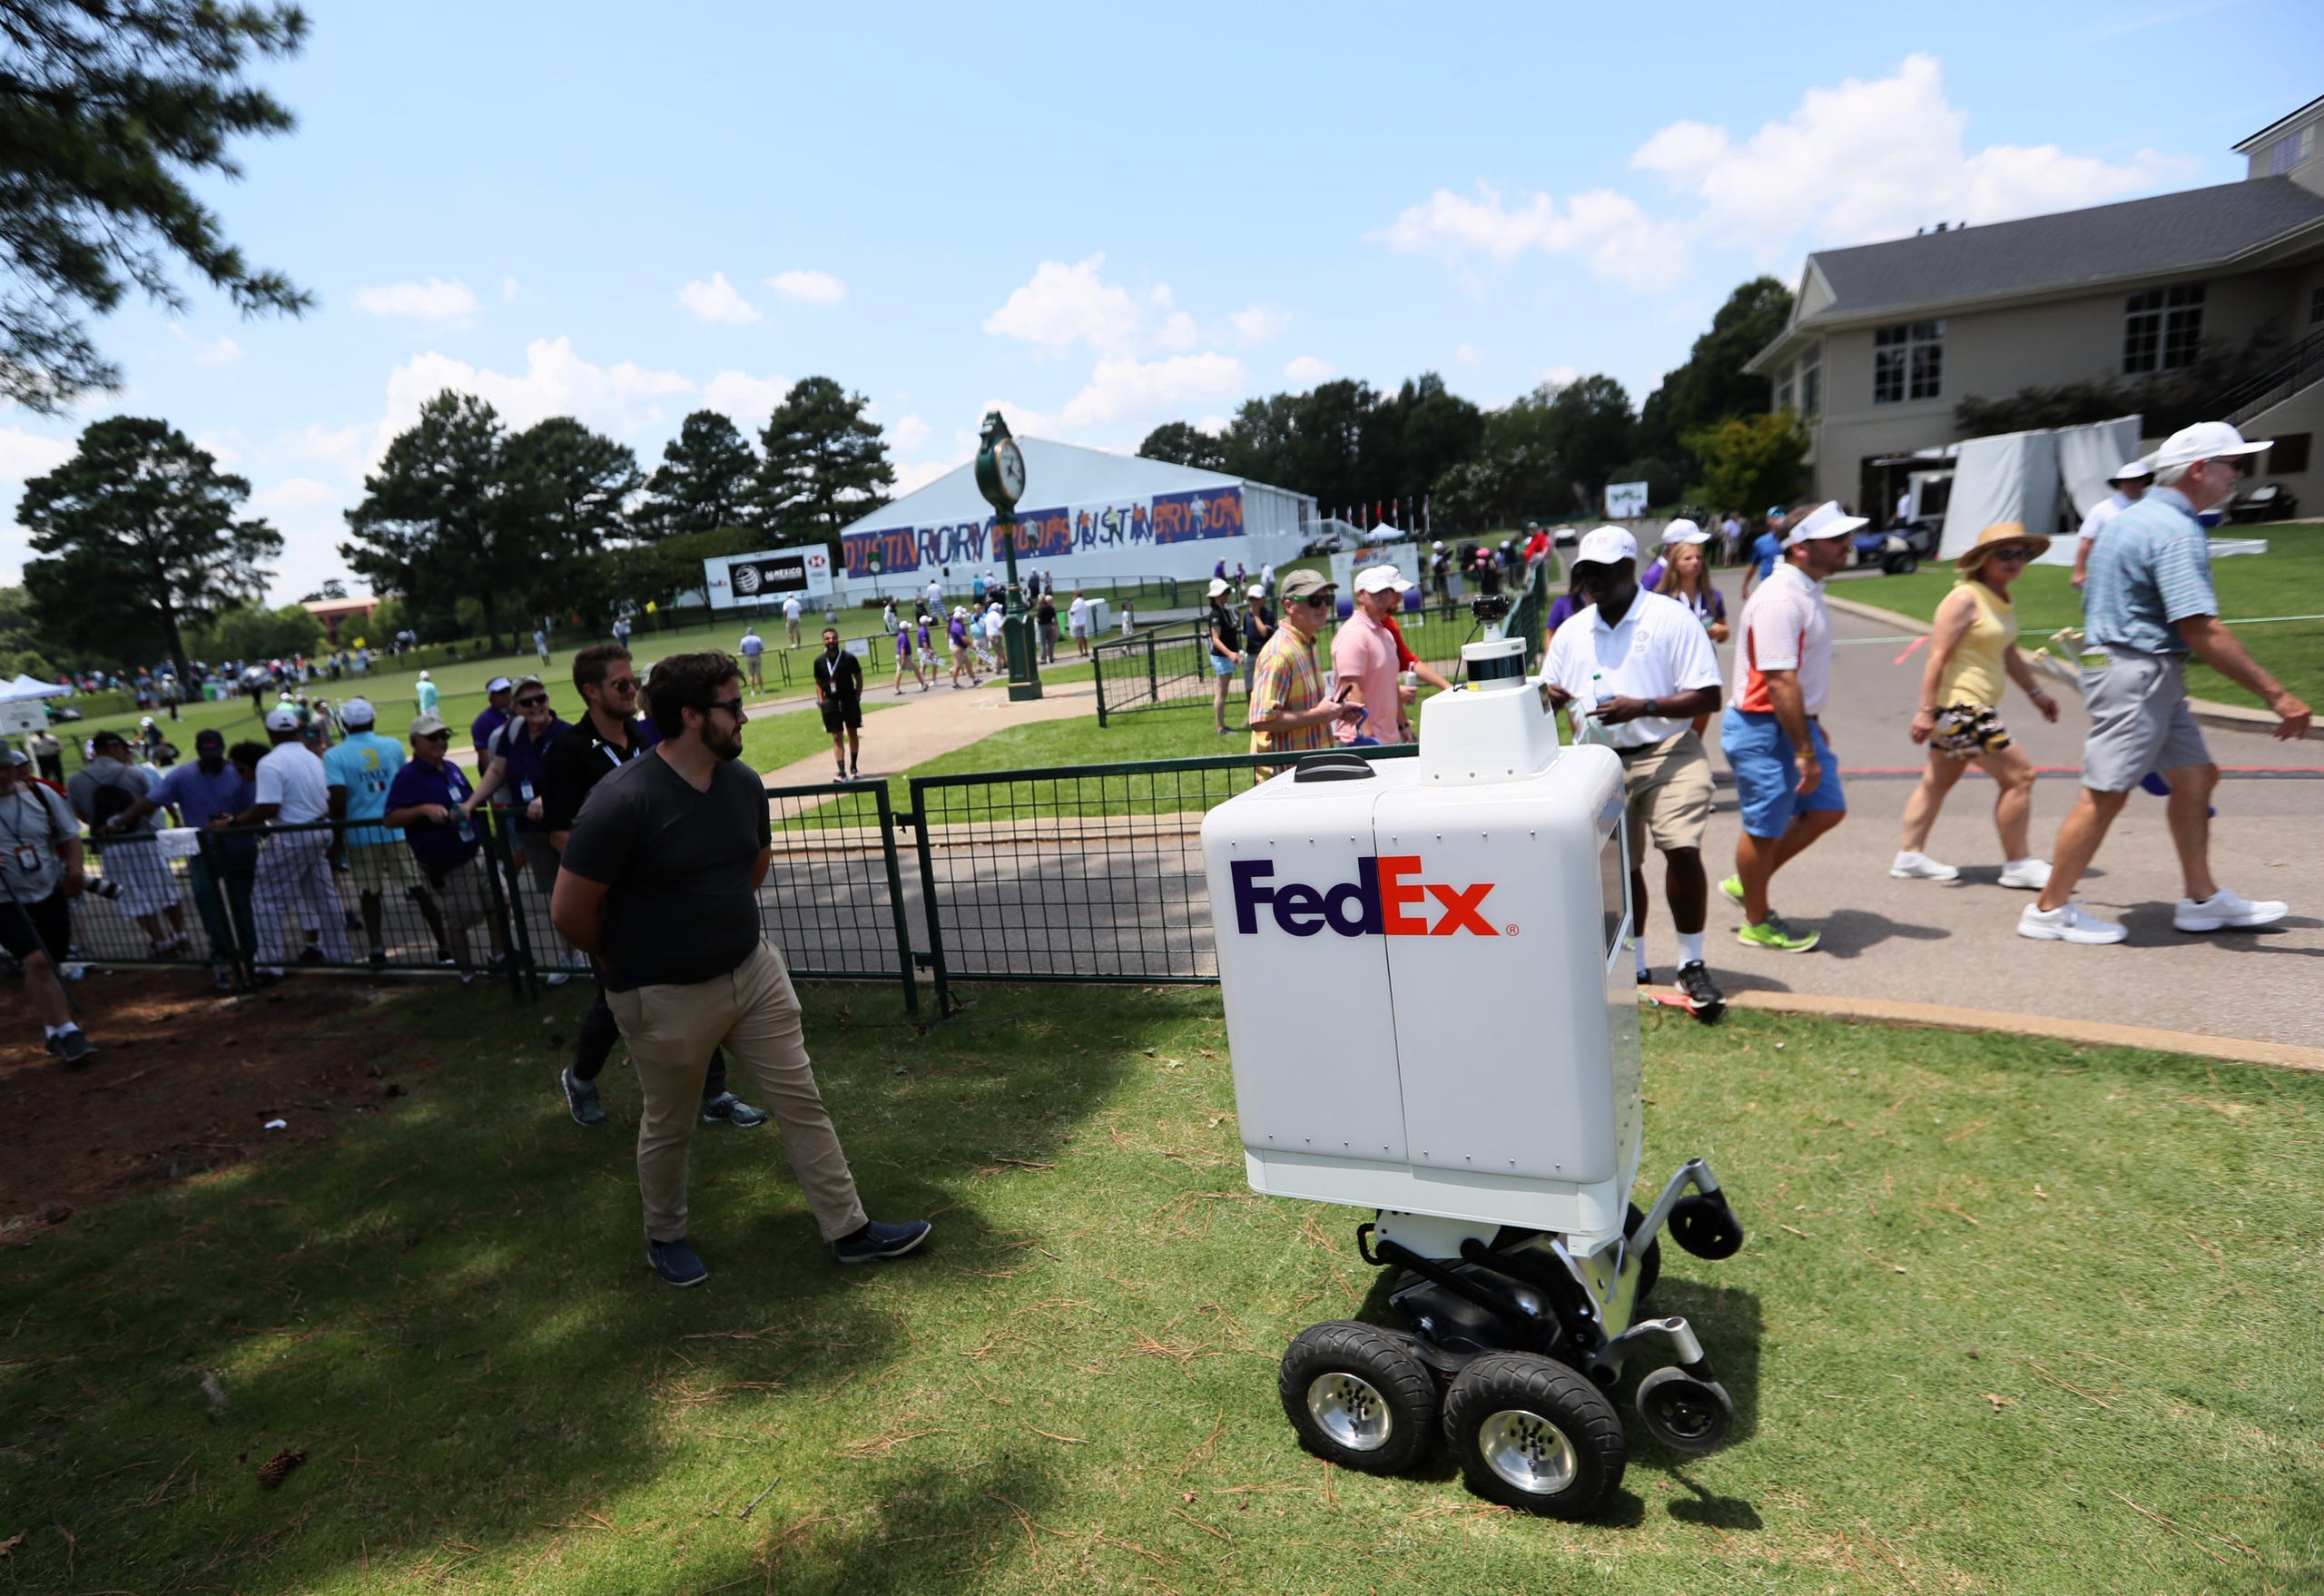 July 24, 2019 - FedEx's automatronic robot Roxo drives past fans at the WGC-FedEx St. Jude Invitational at TPC Southwind.